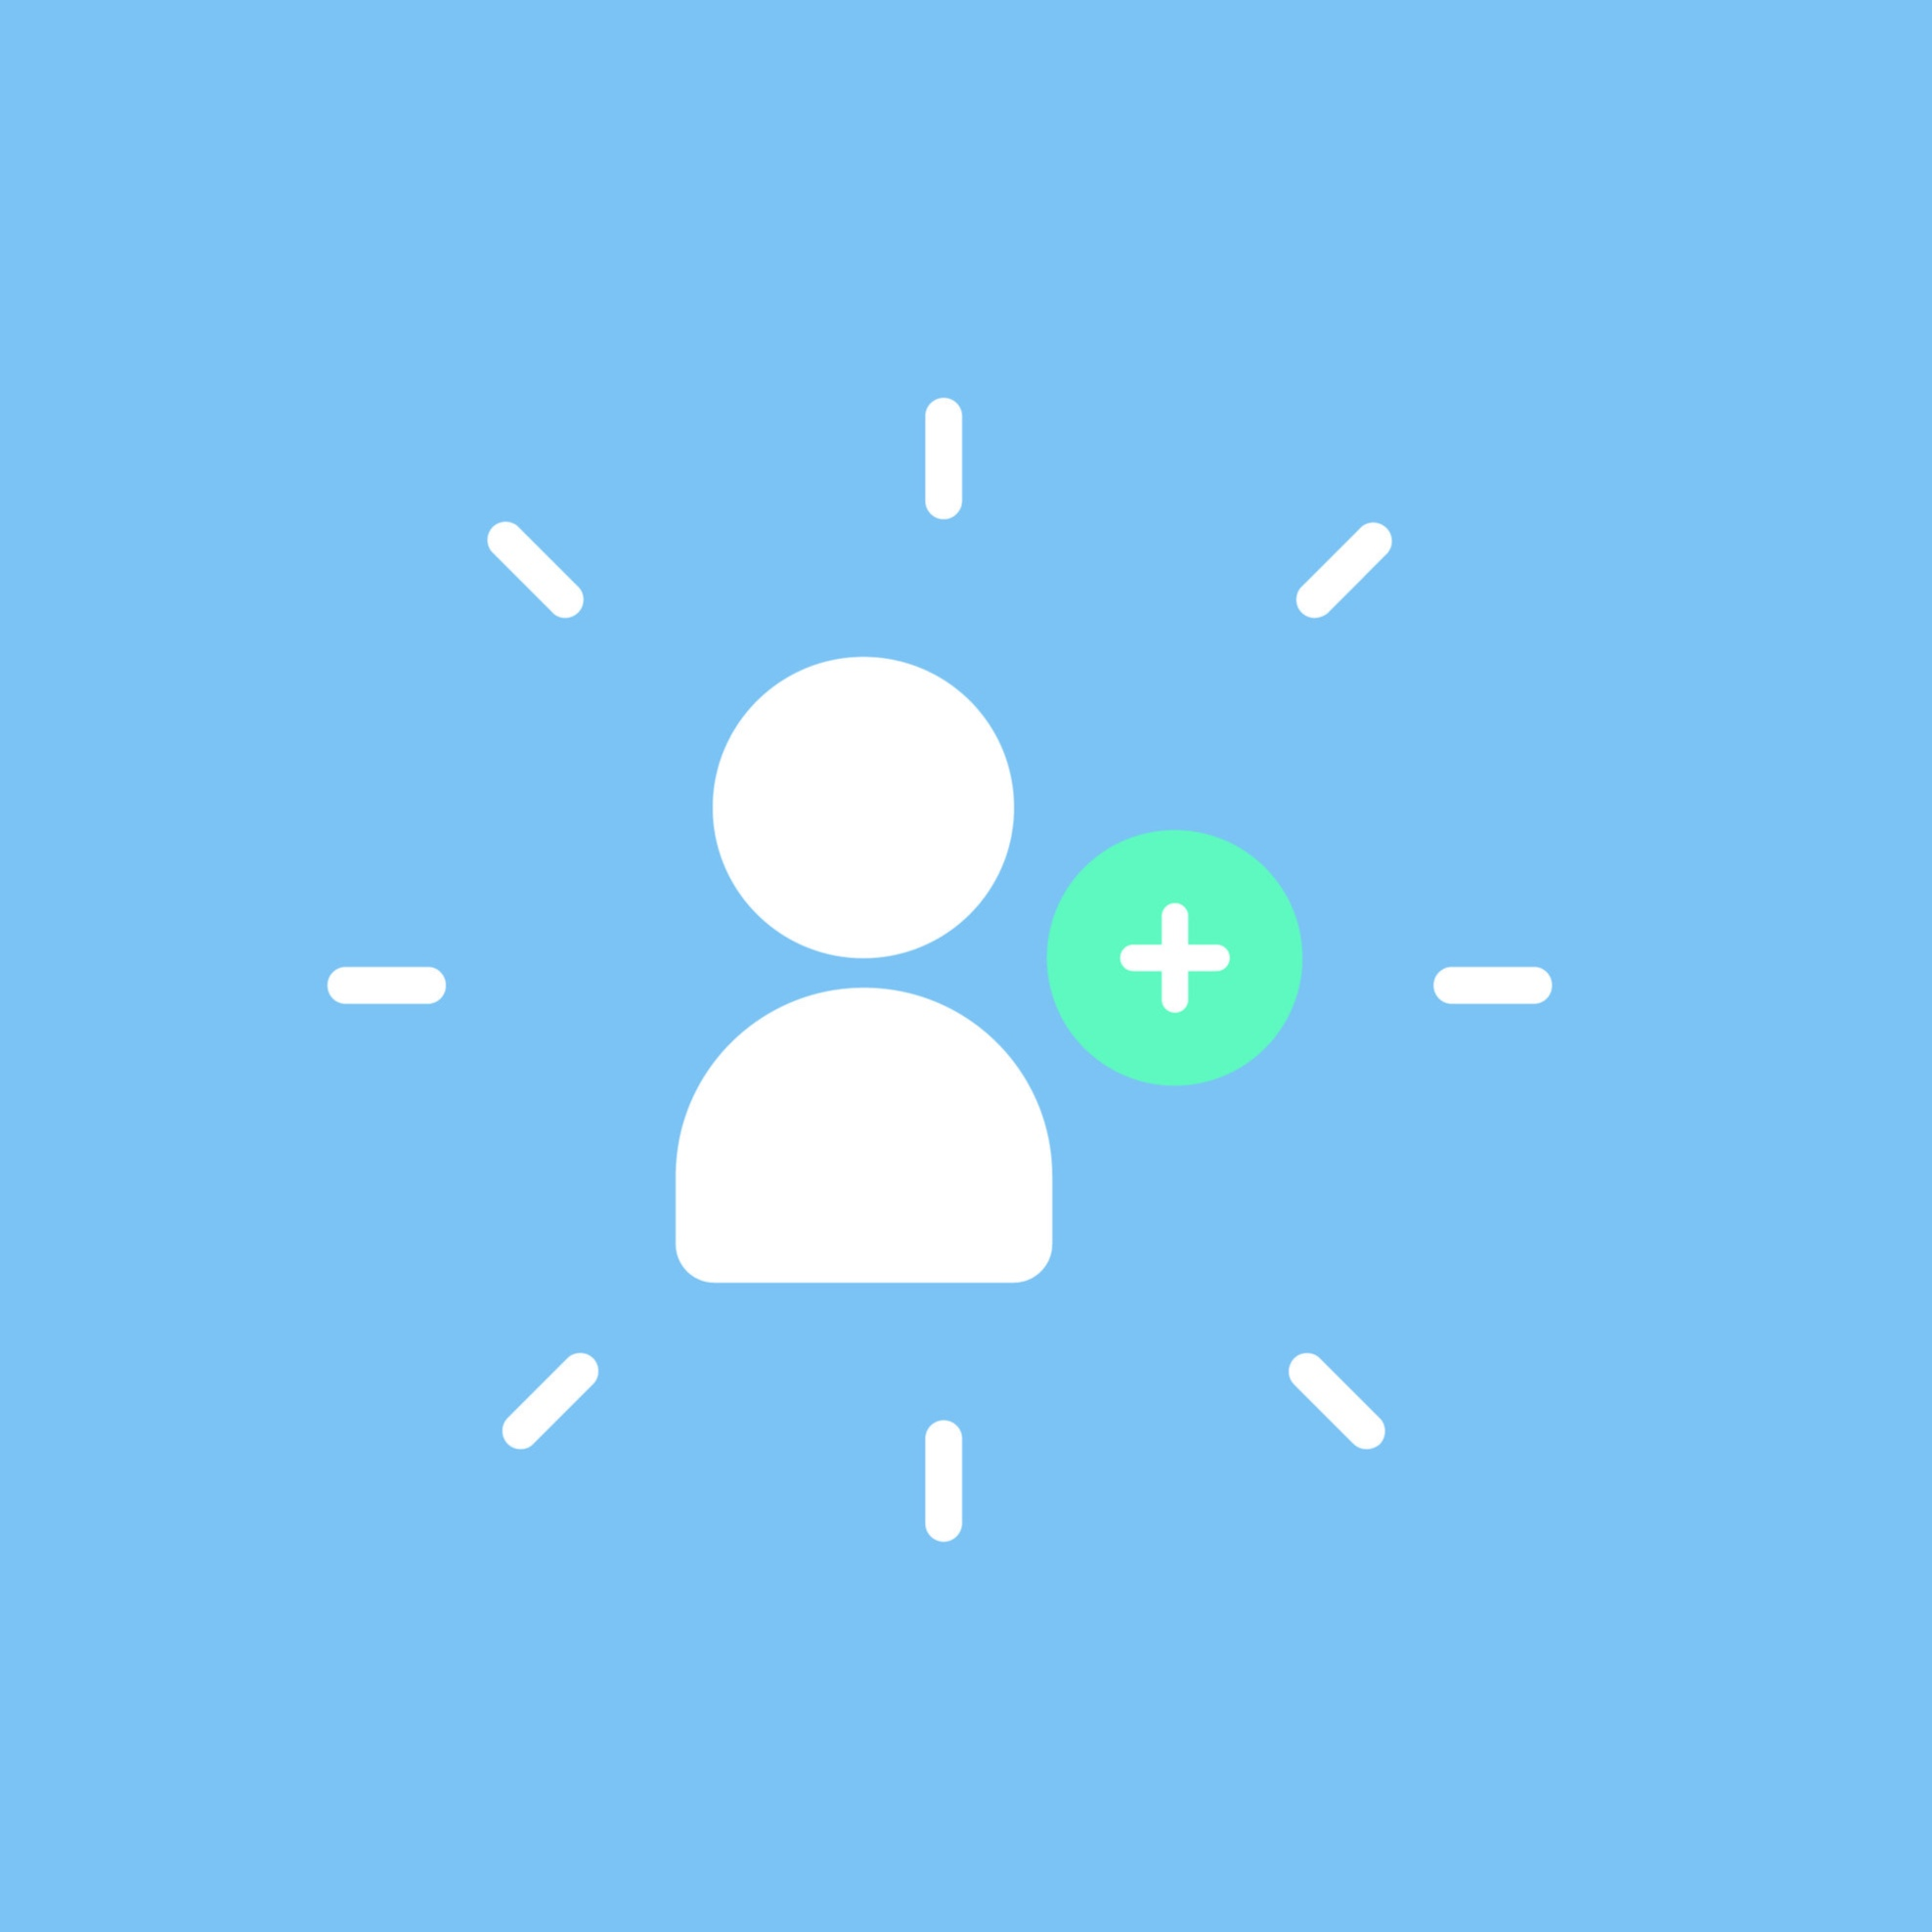 Invite - Invite as many members as you want to a single task.